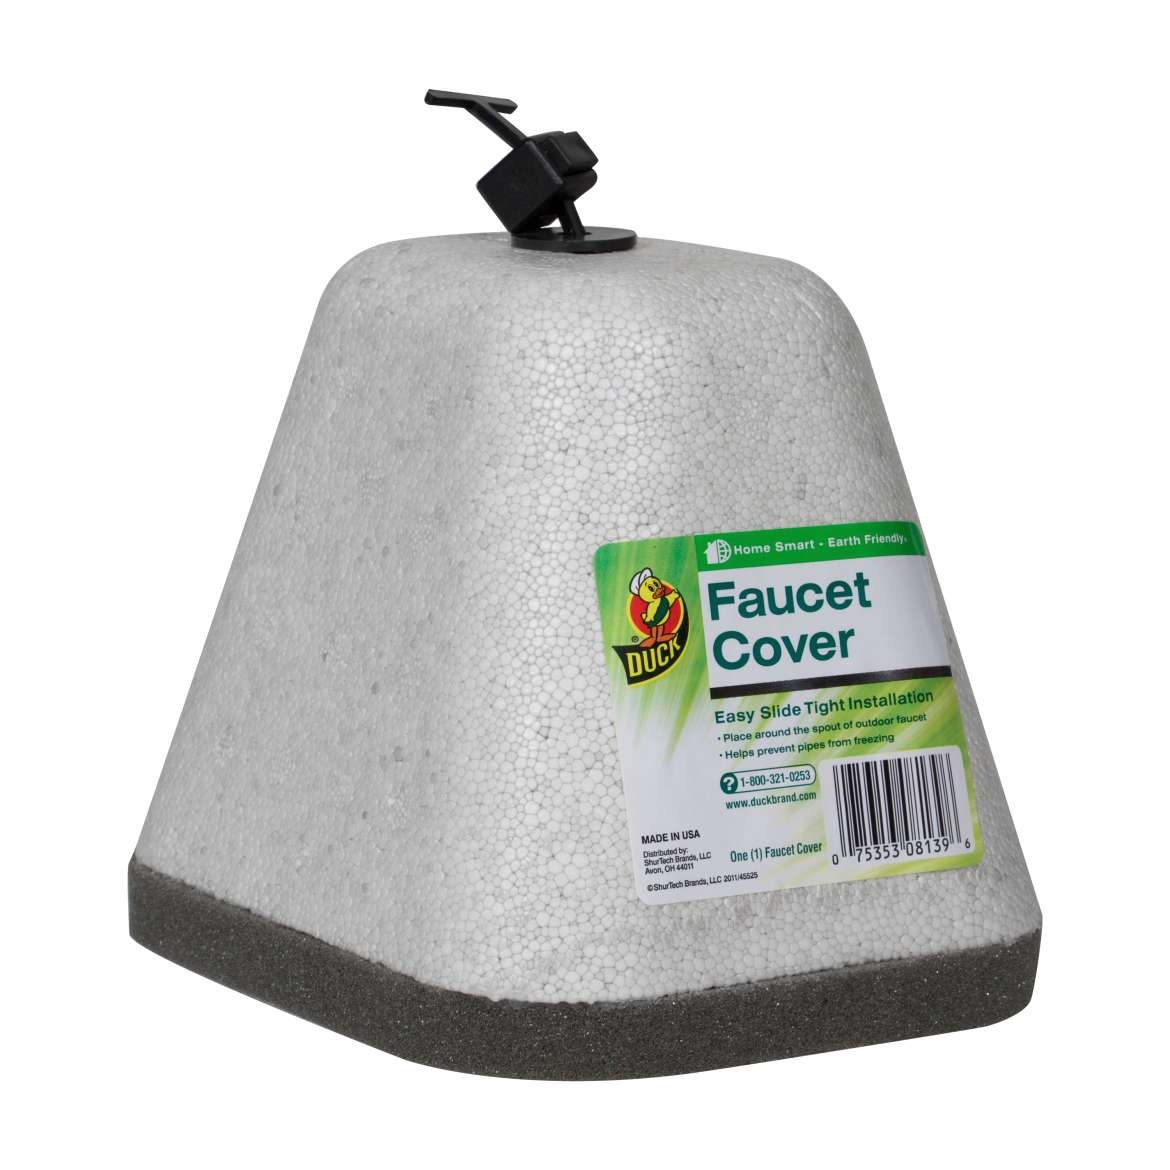 Ideas, winter cover for outside faucets winter cover for outside faucets pyramid faucet cover 1pk walmart 1170 x 1170 jpeg.